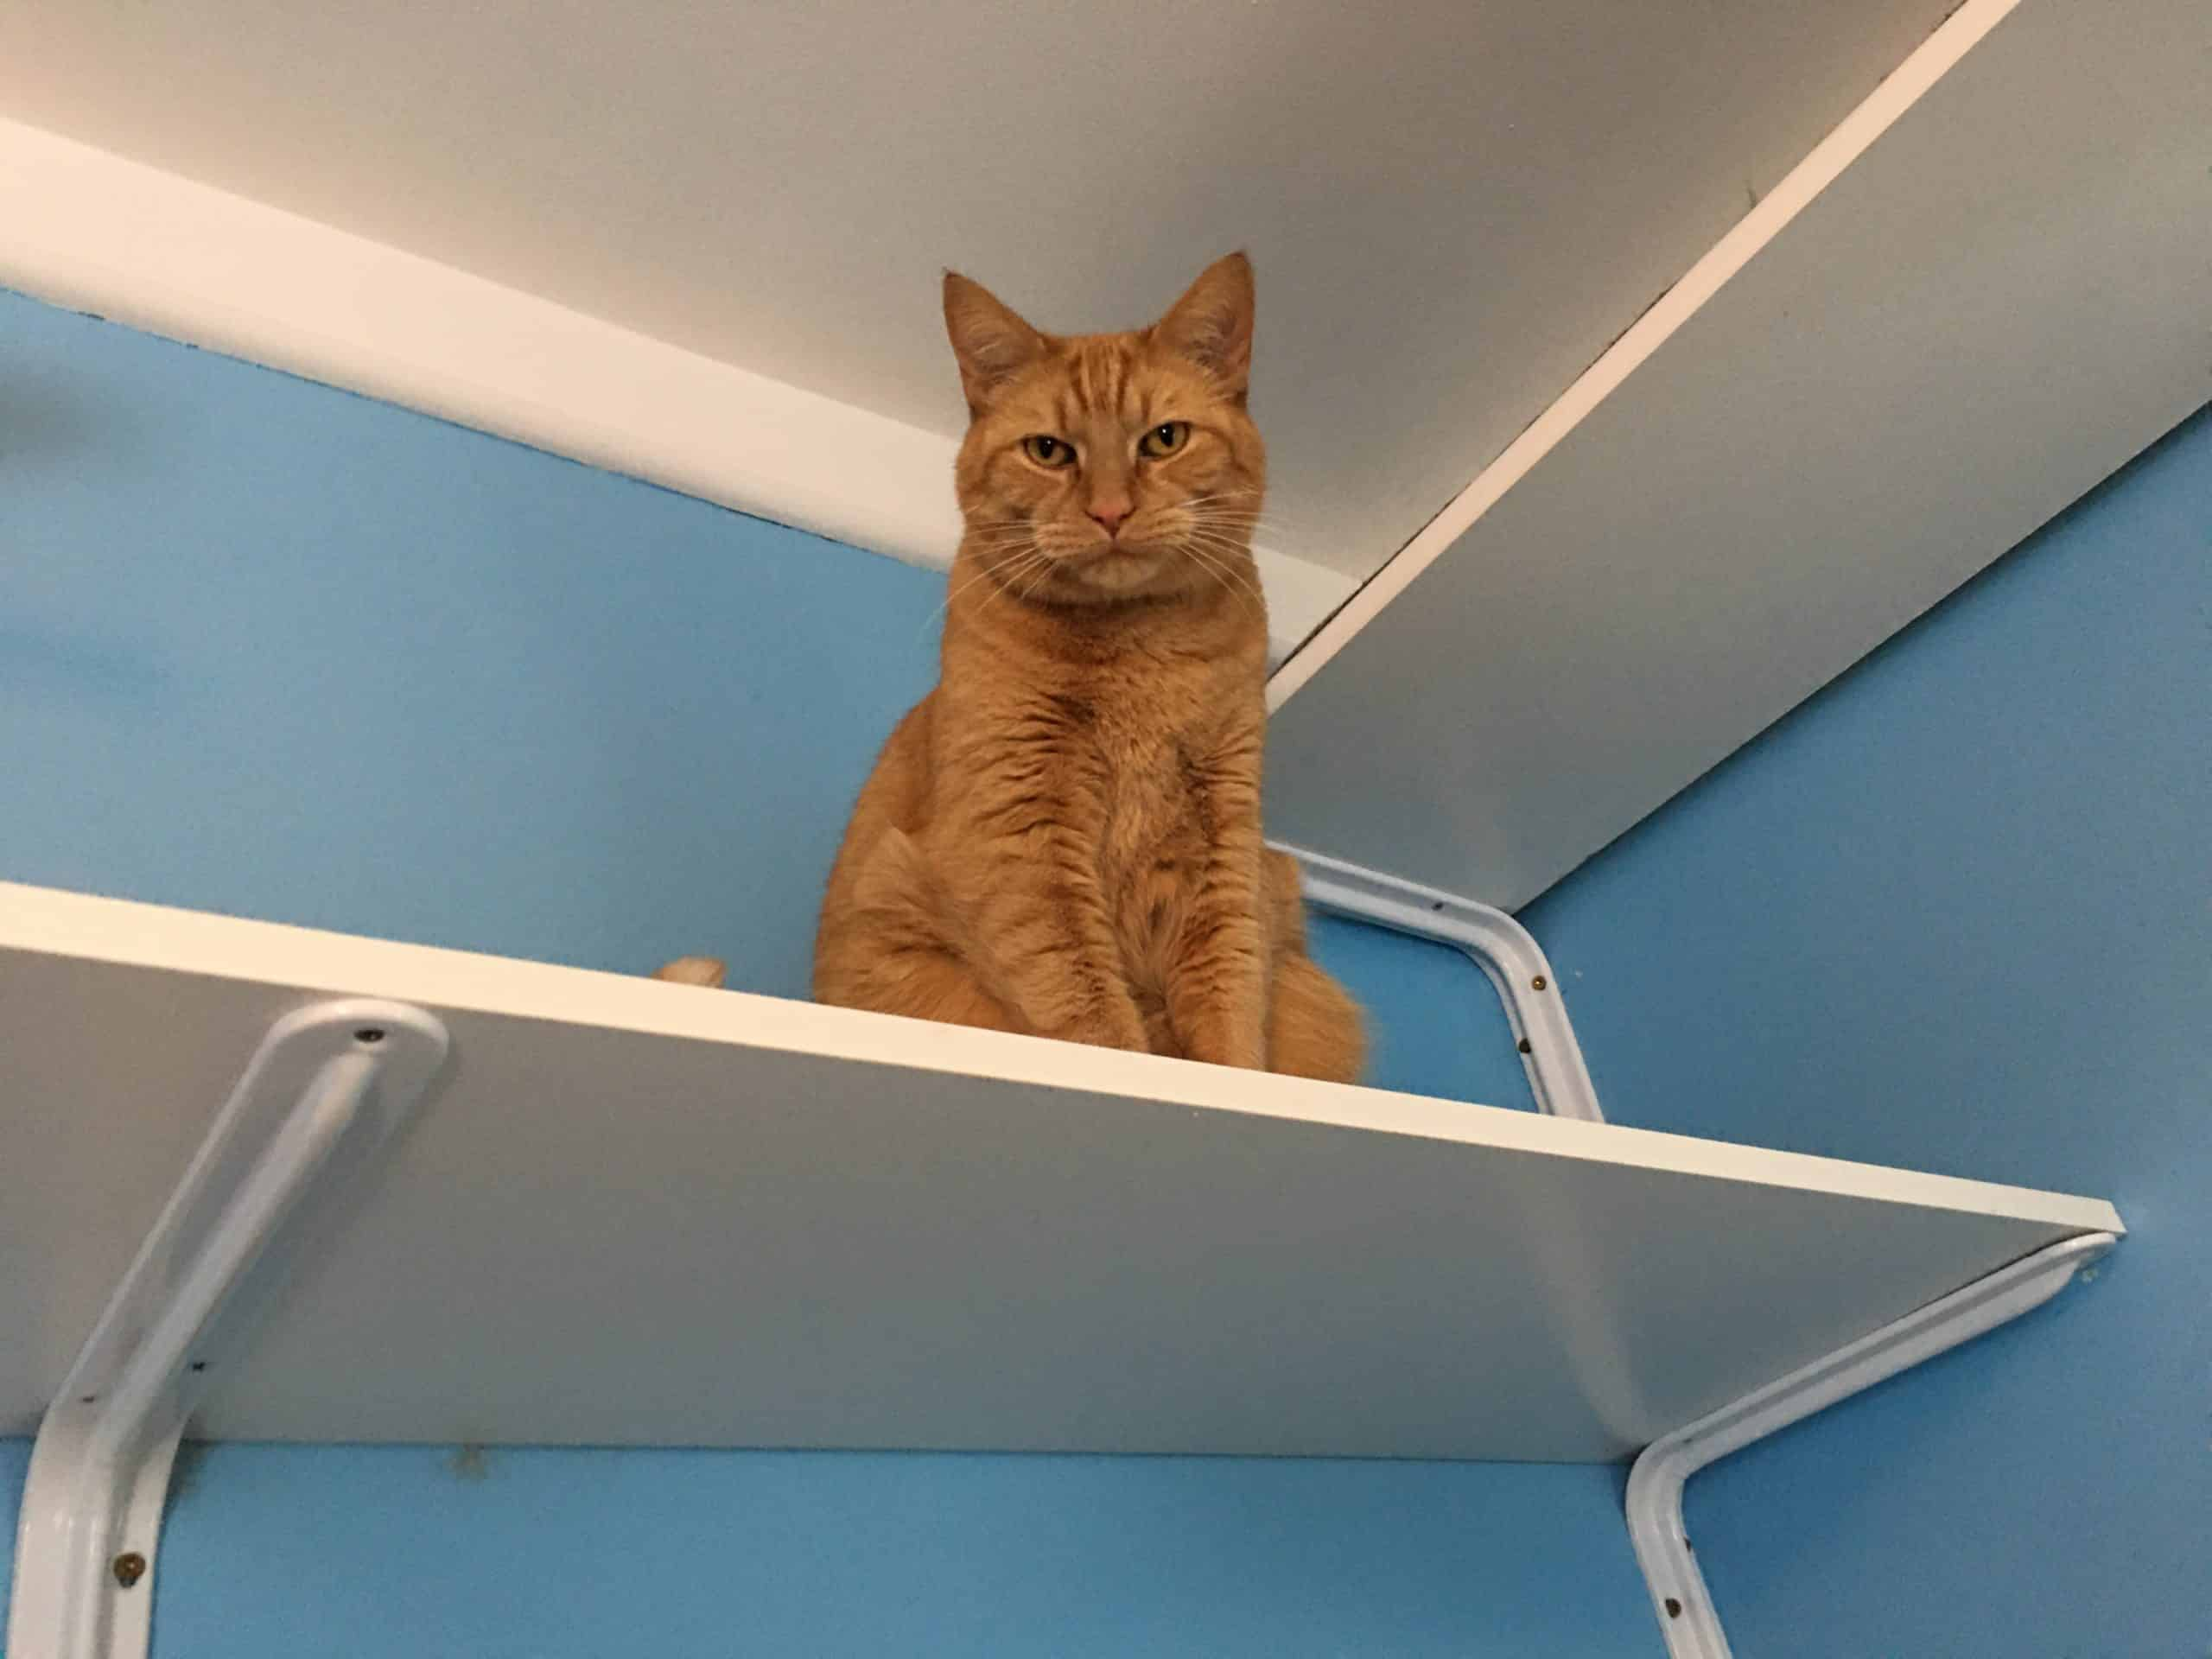 Cat sitting on a cat shelf